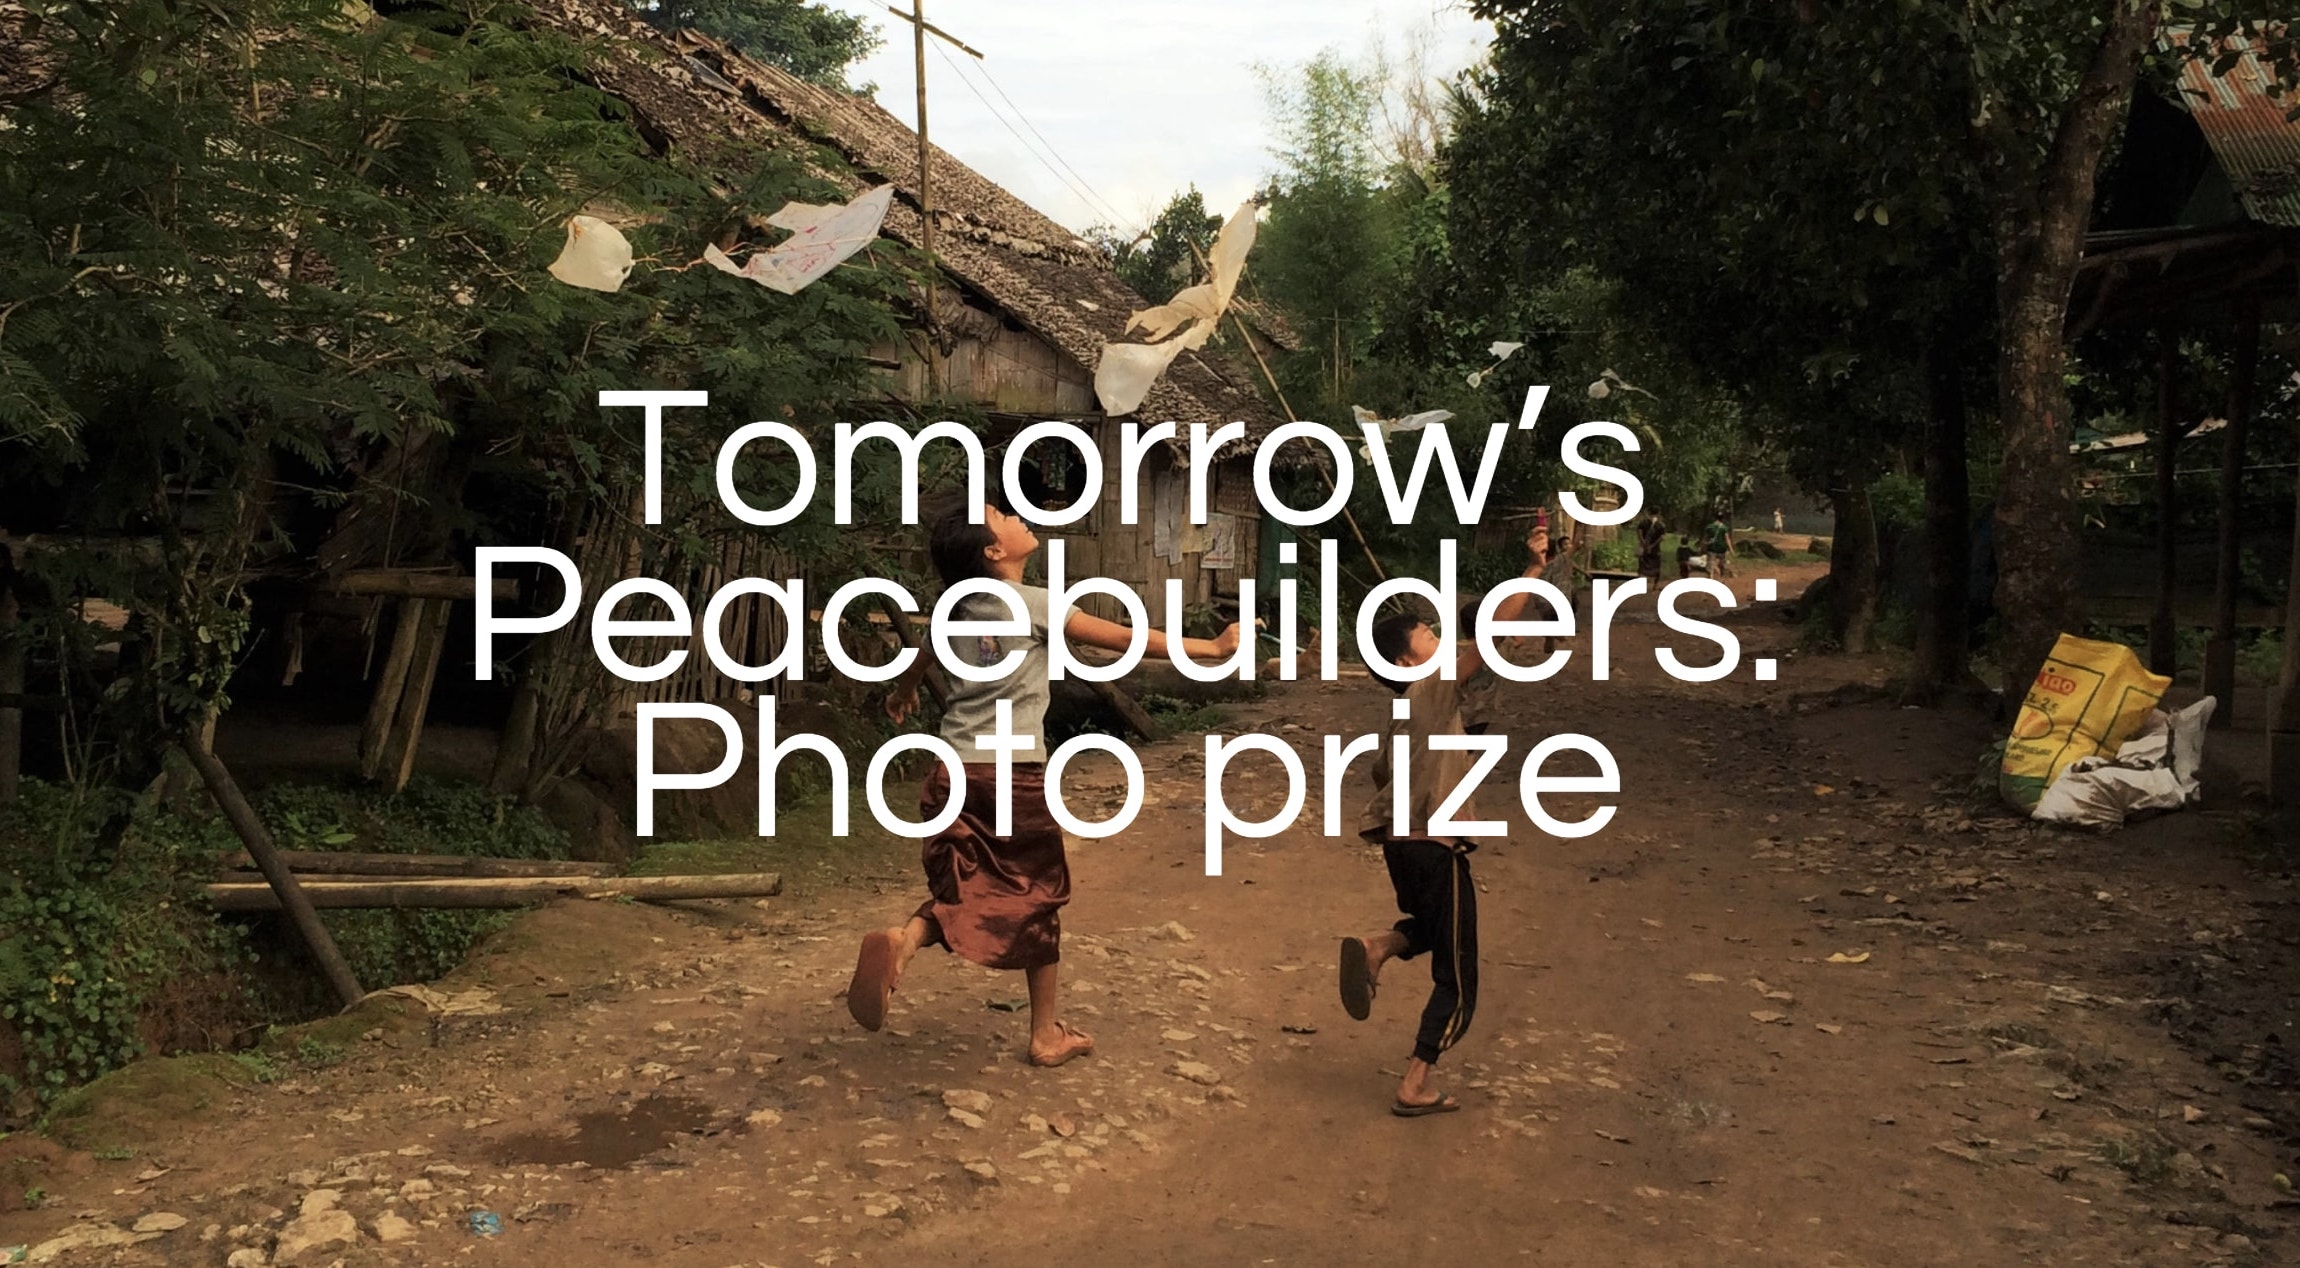 Tomorrow's Peacebuilders Photo Prize 2018 ($1,000 for the winning entry)